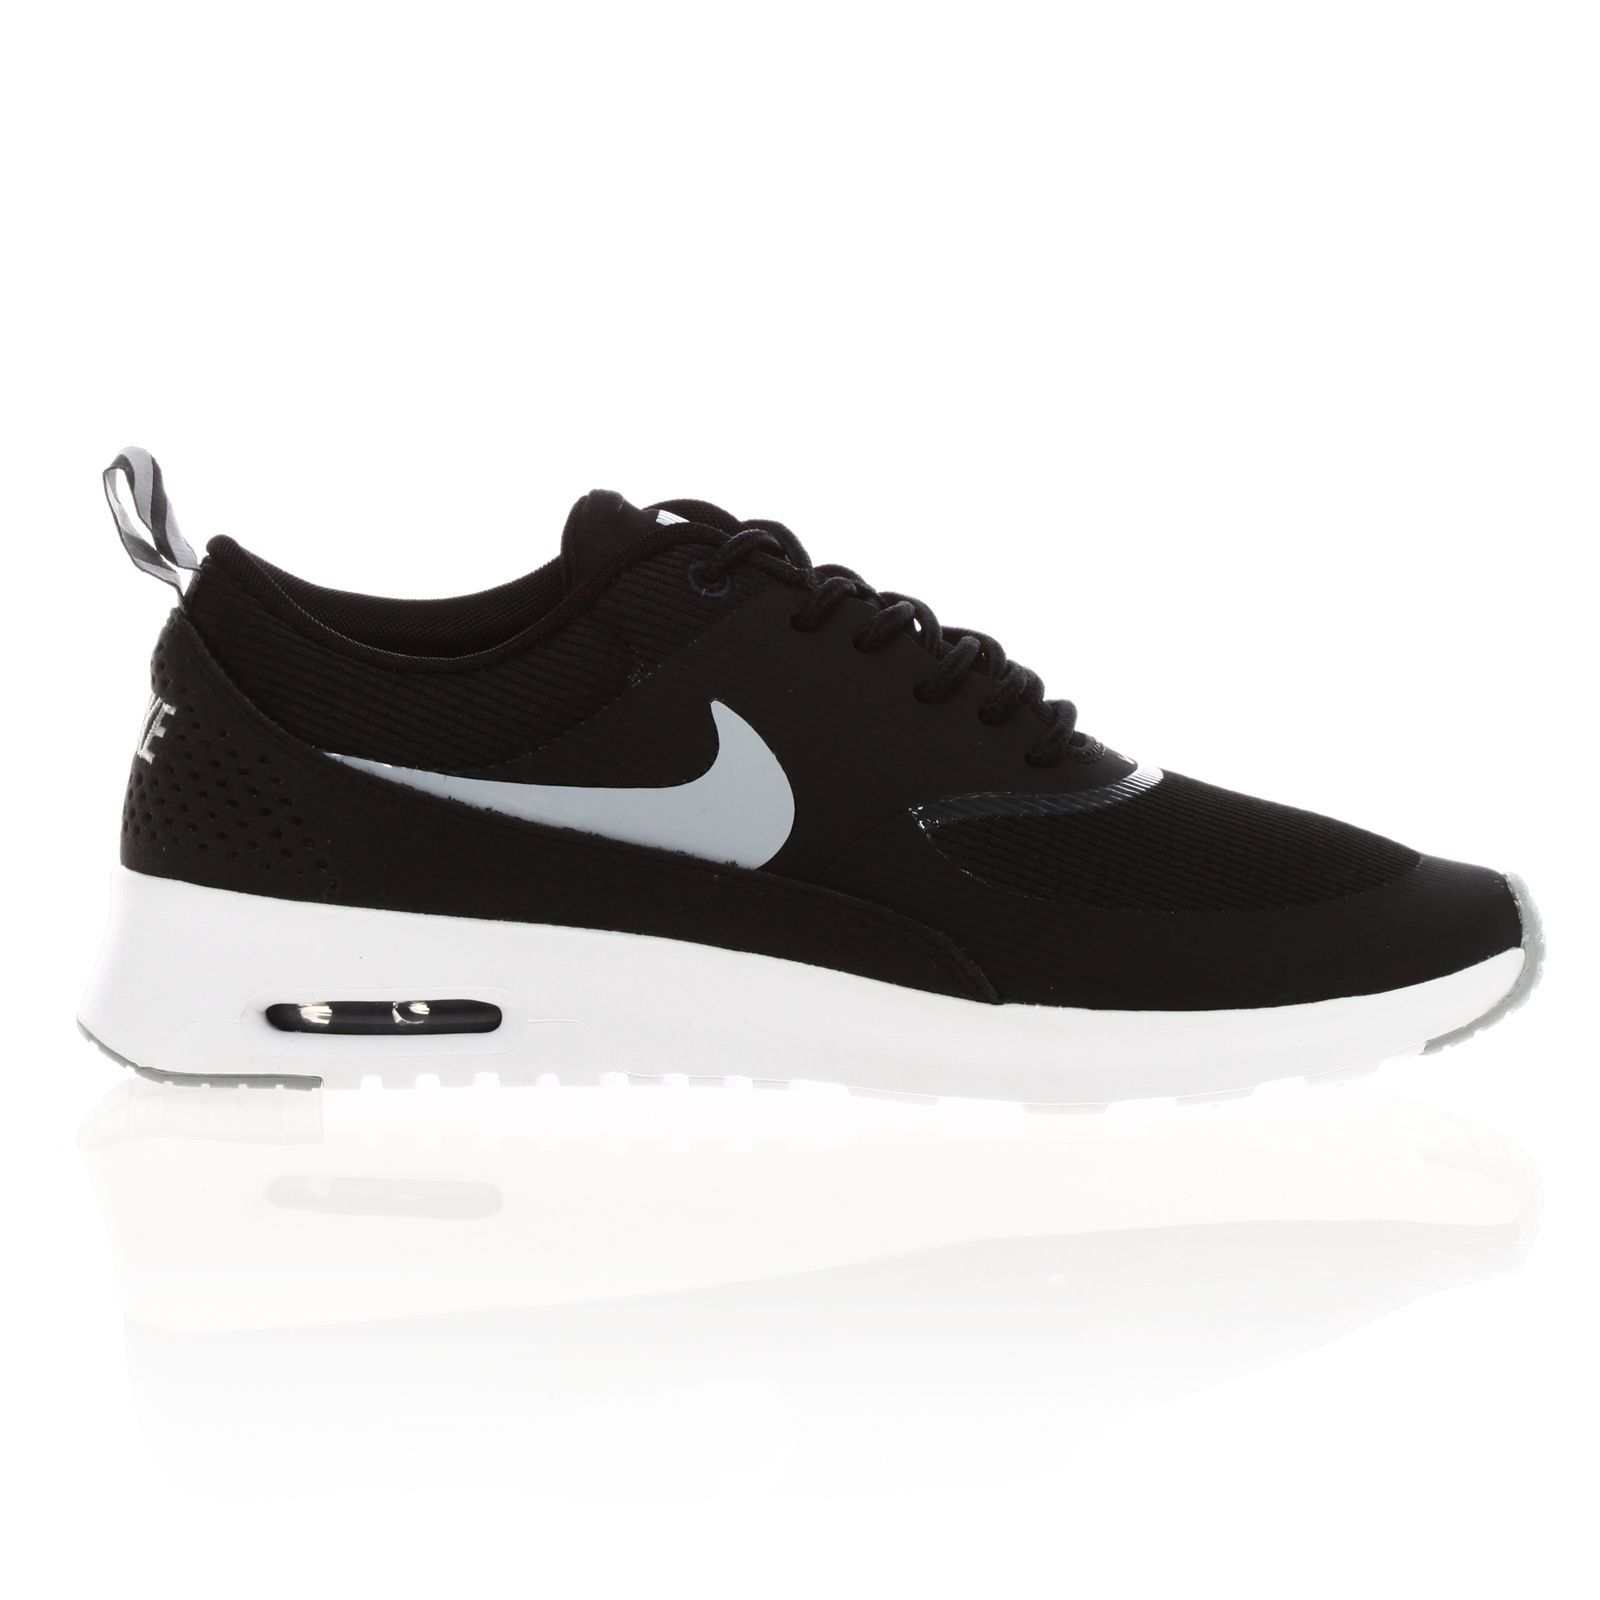 nike air max thea turnschuhe sneakers schwarz. Black Bedroom Furniture Sets. Home Design Ideas